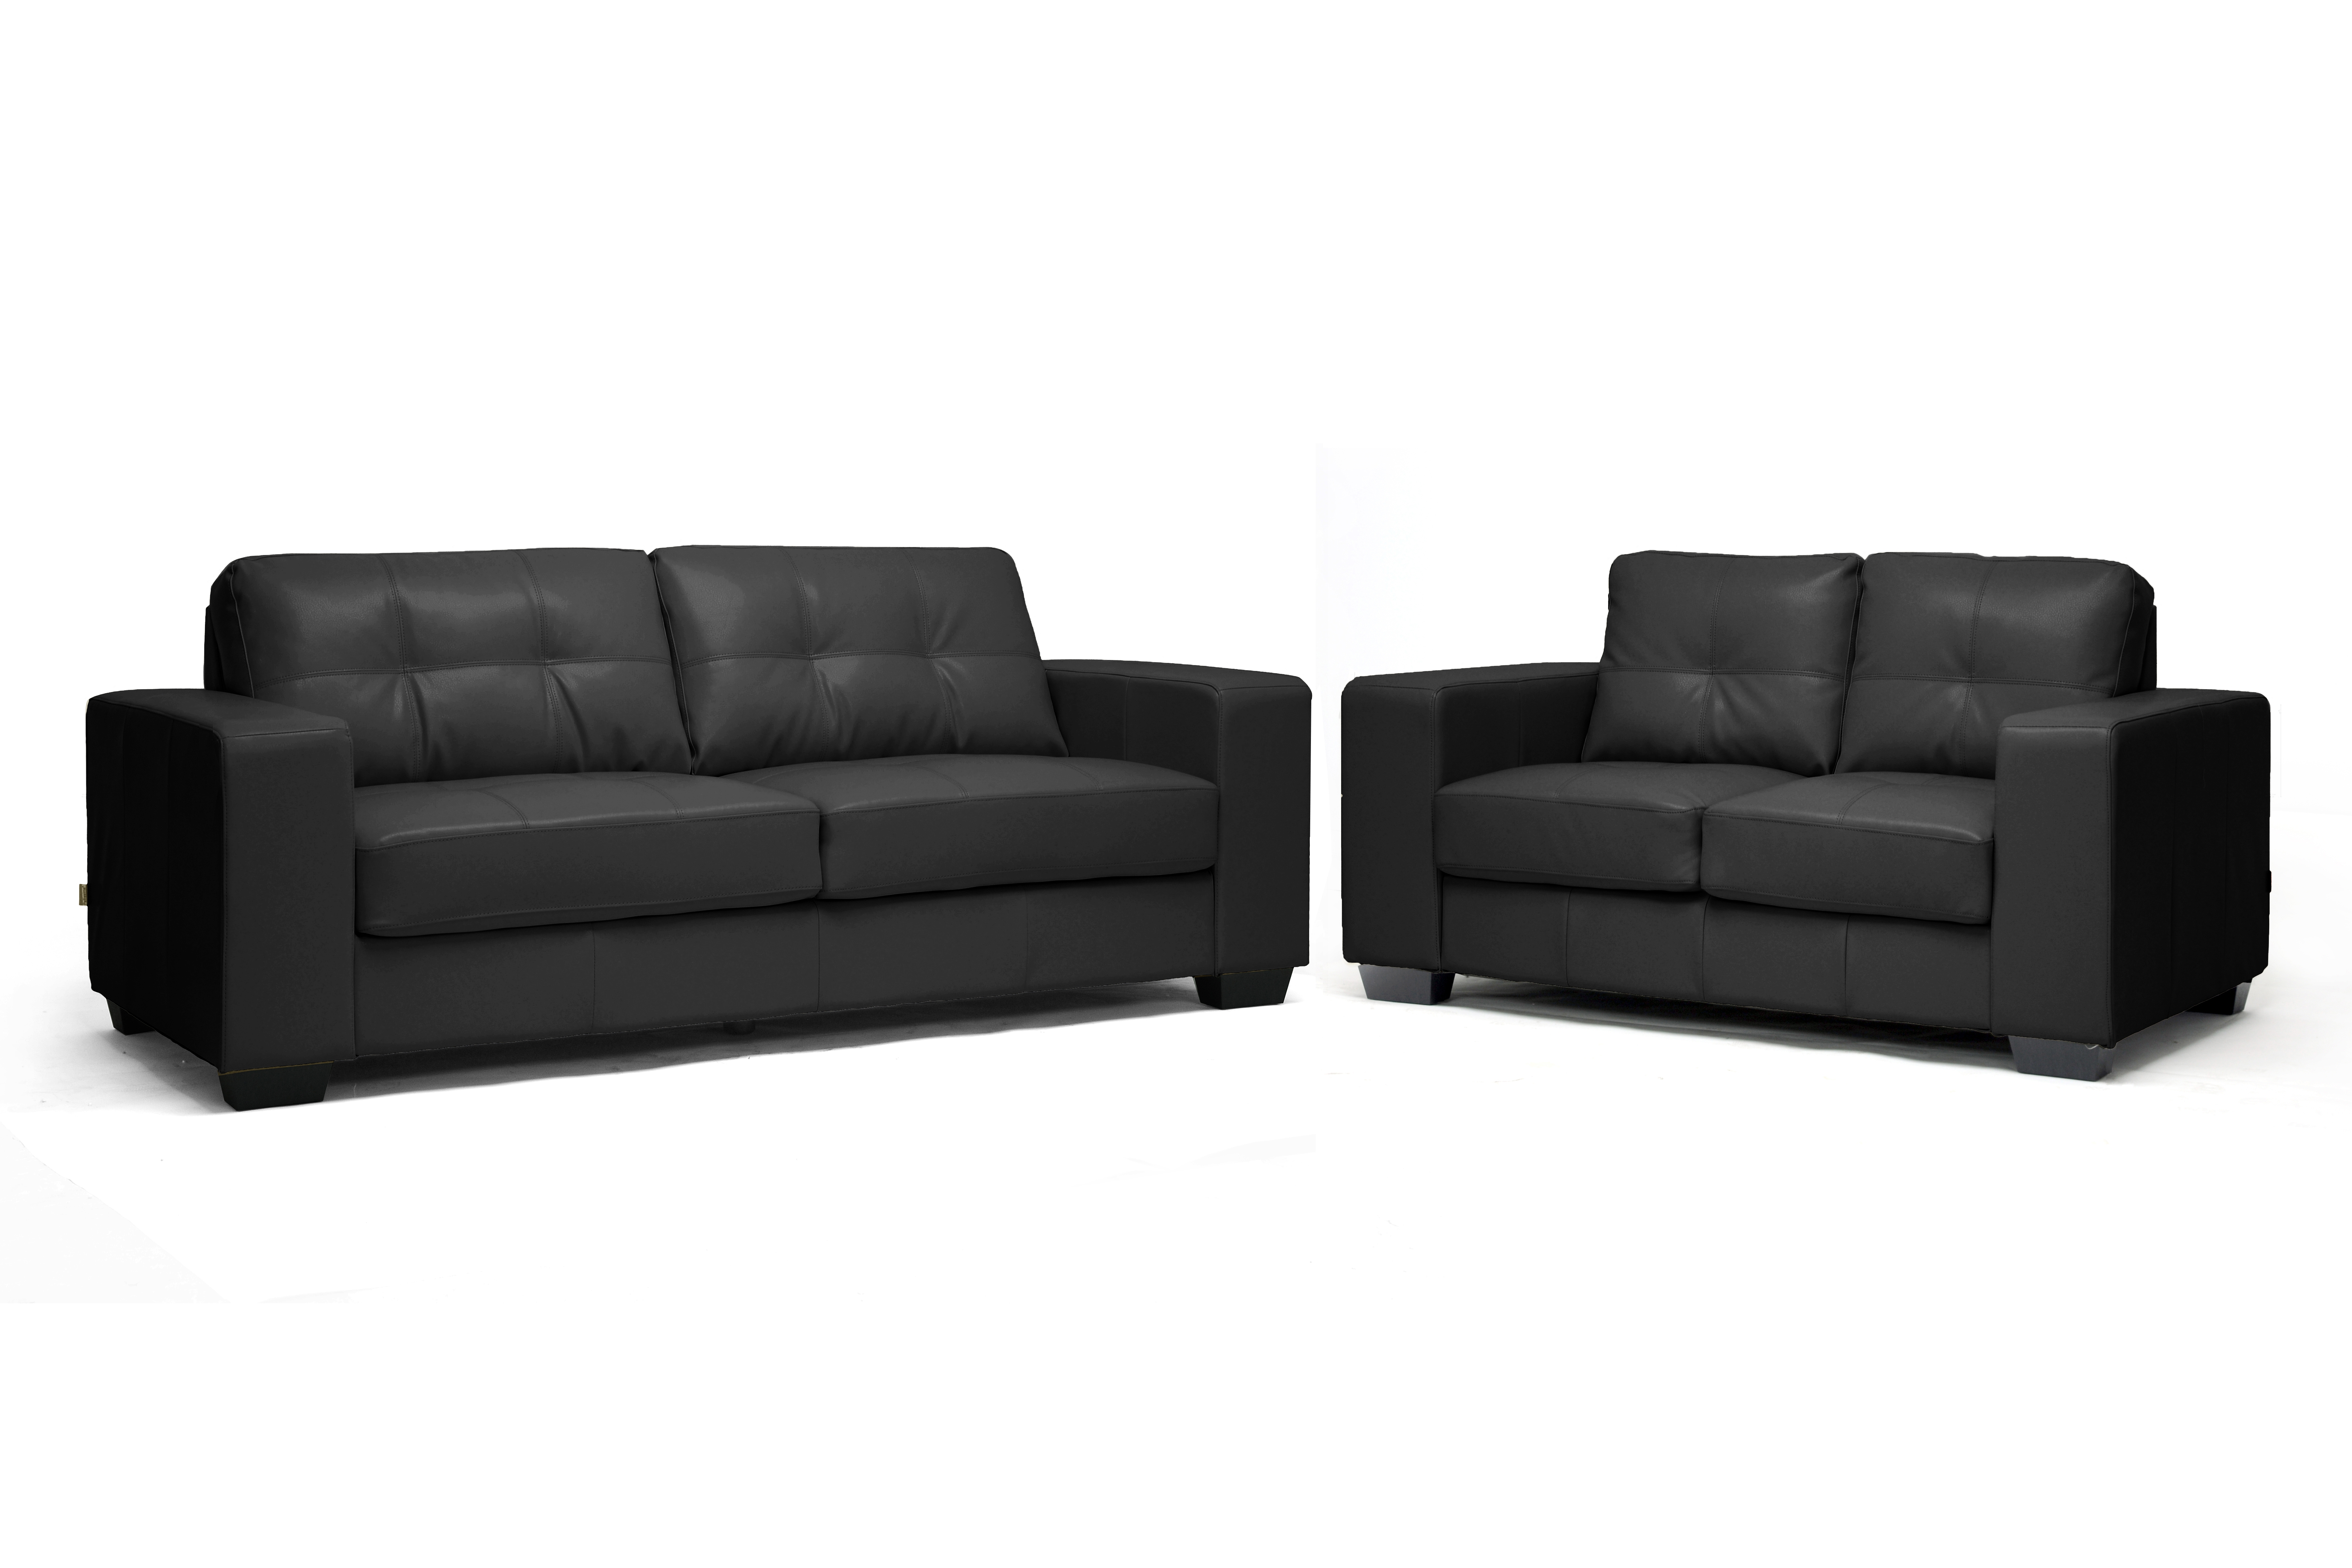 Whitney Black Leather Modern Sofa Set Affordable Furniture In Chicago